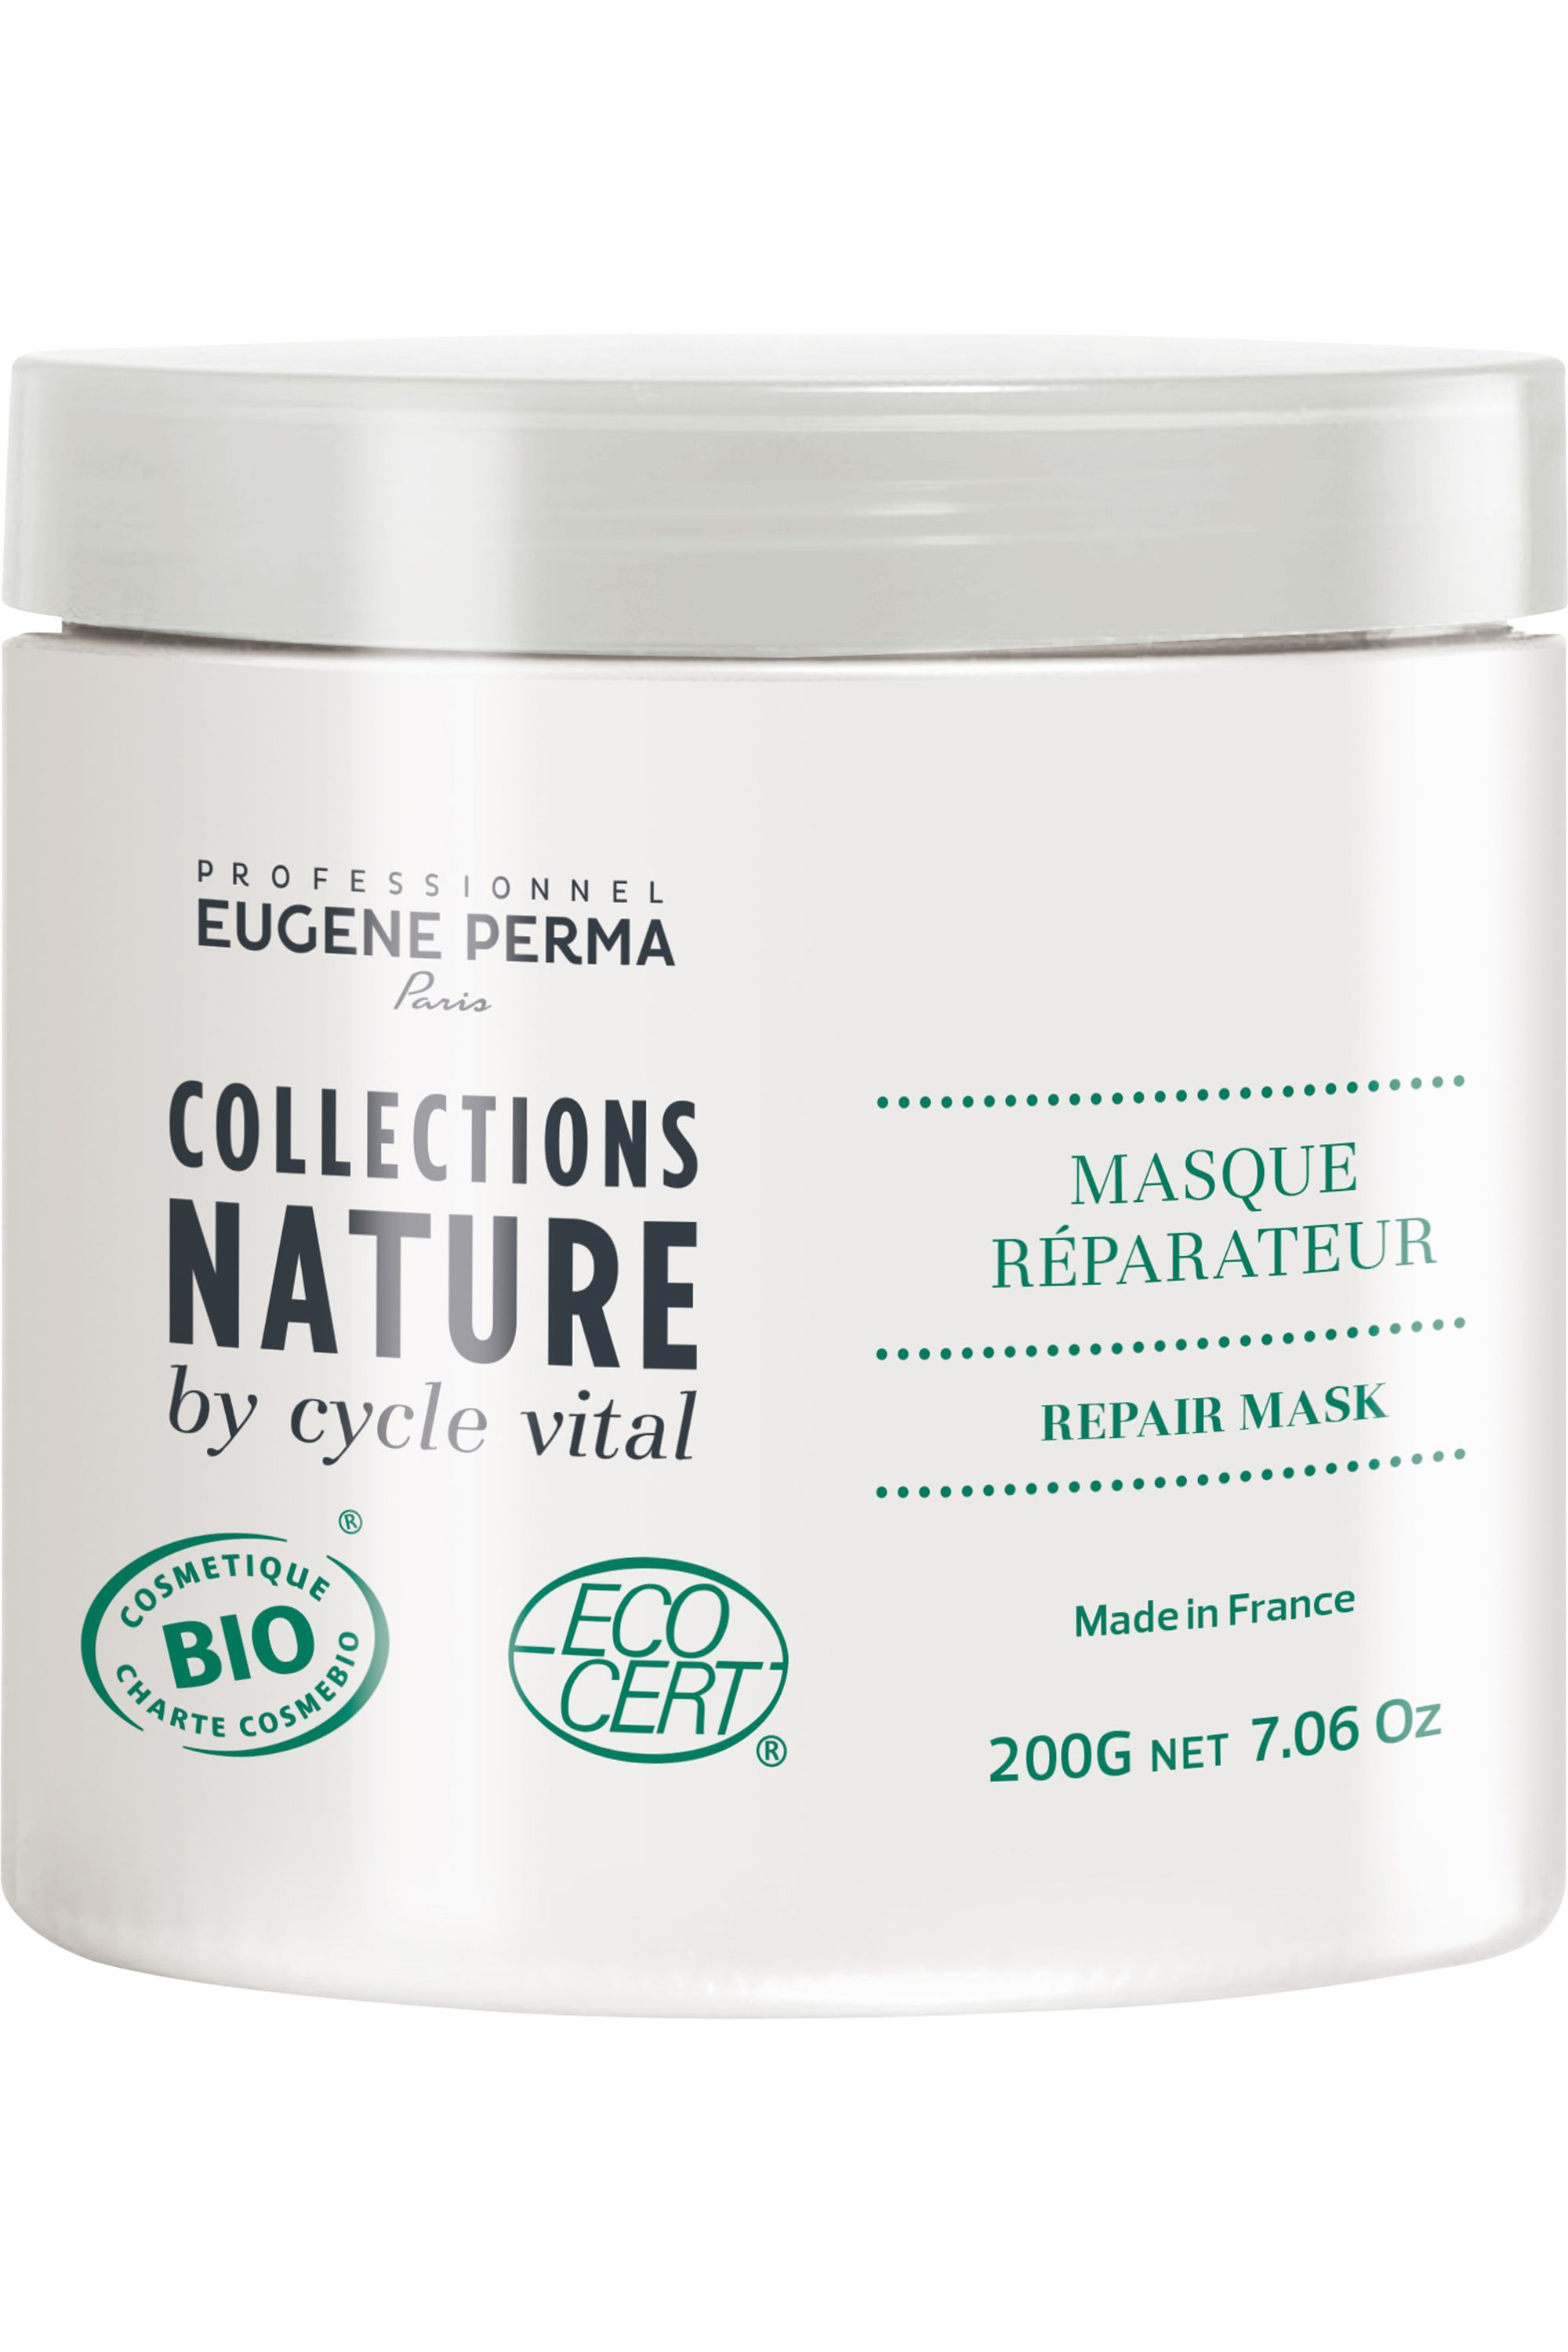 Blissim : Collections Nature - Masque cheveux réparateur - Masque cheveux réparateur